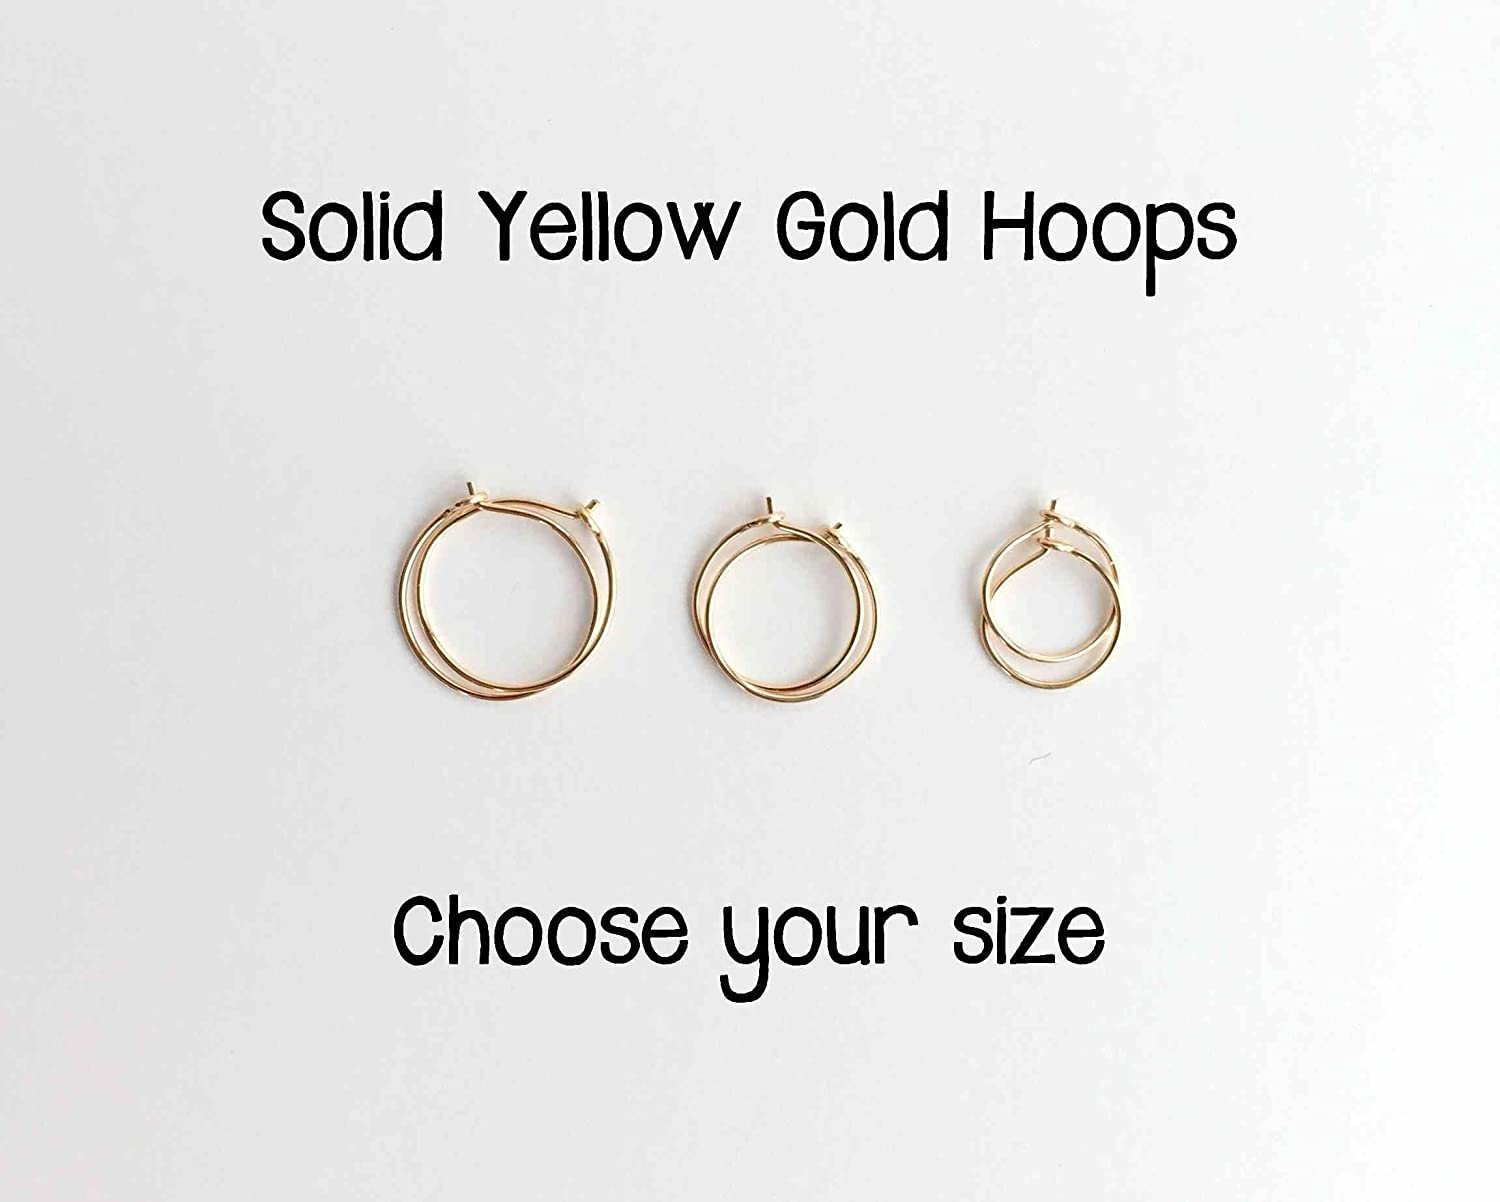 Solid 14k YELLOW Gold Hoop Earrings Handmade. Choose your size.